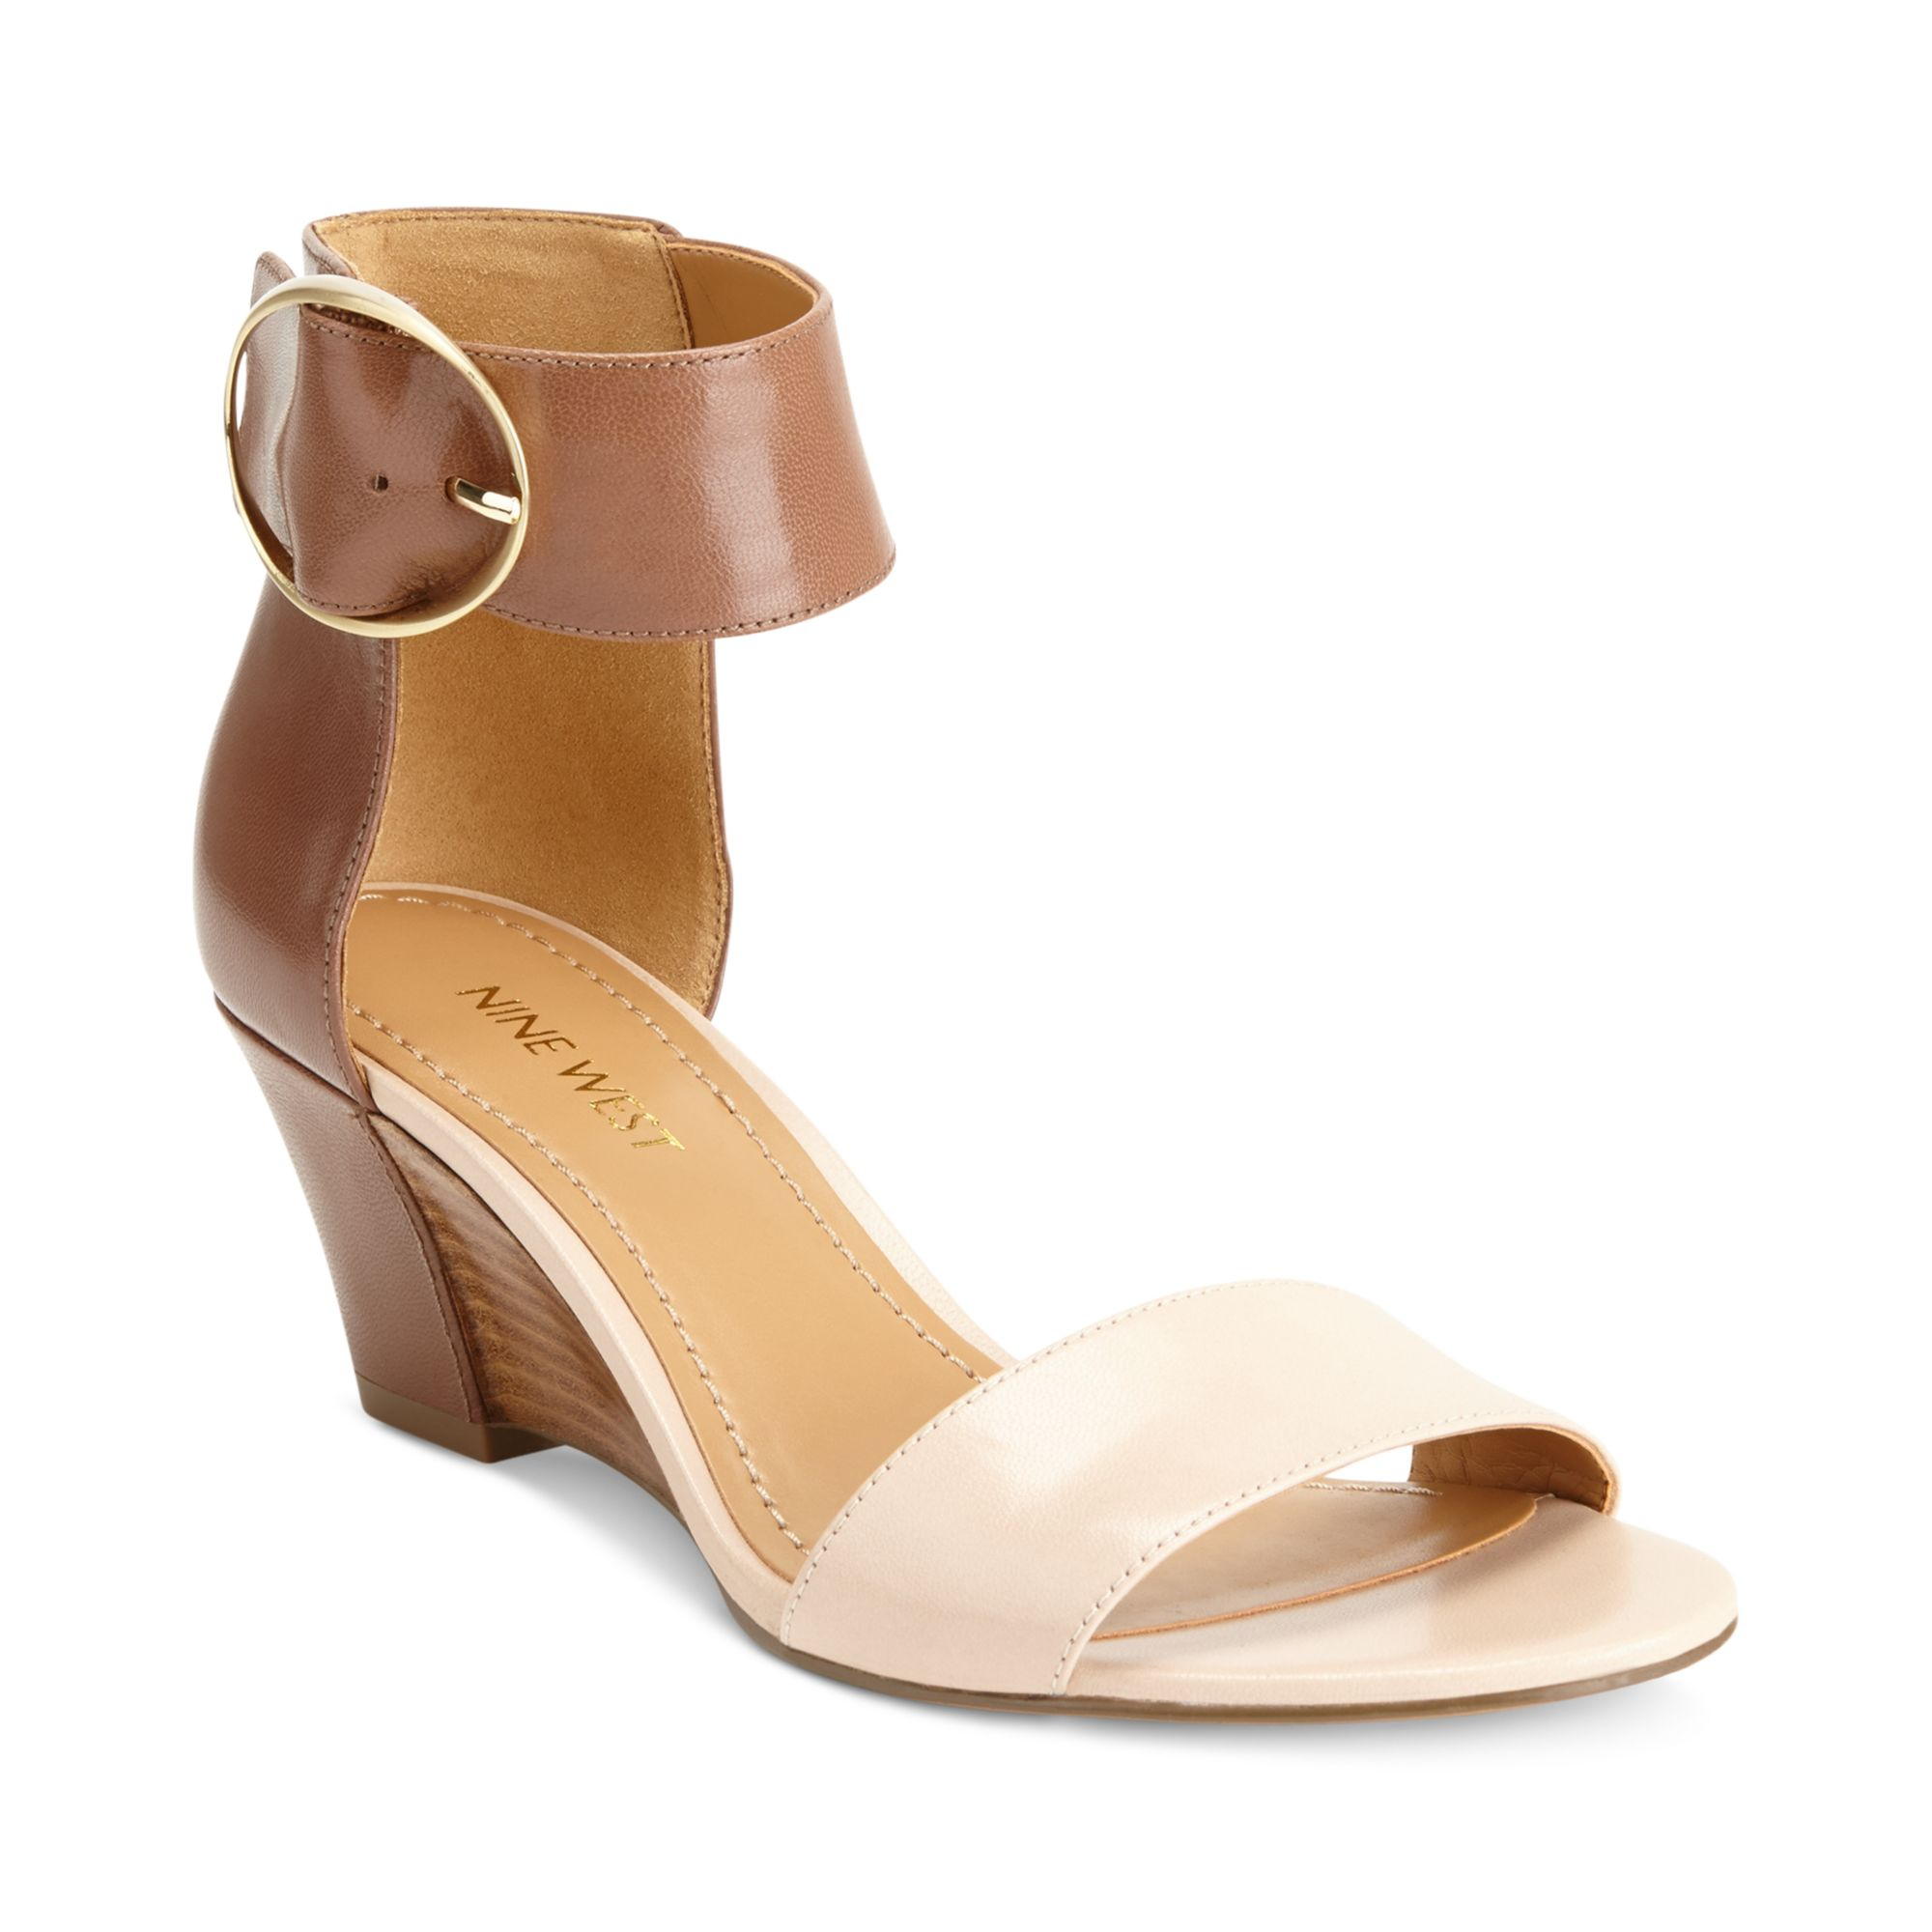 Nine West Ventana Ankle Strap Demi Wedge Sandals In Brown